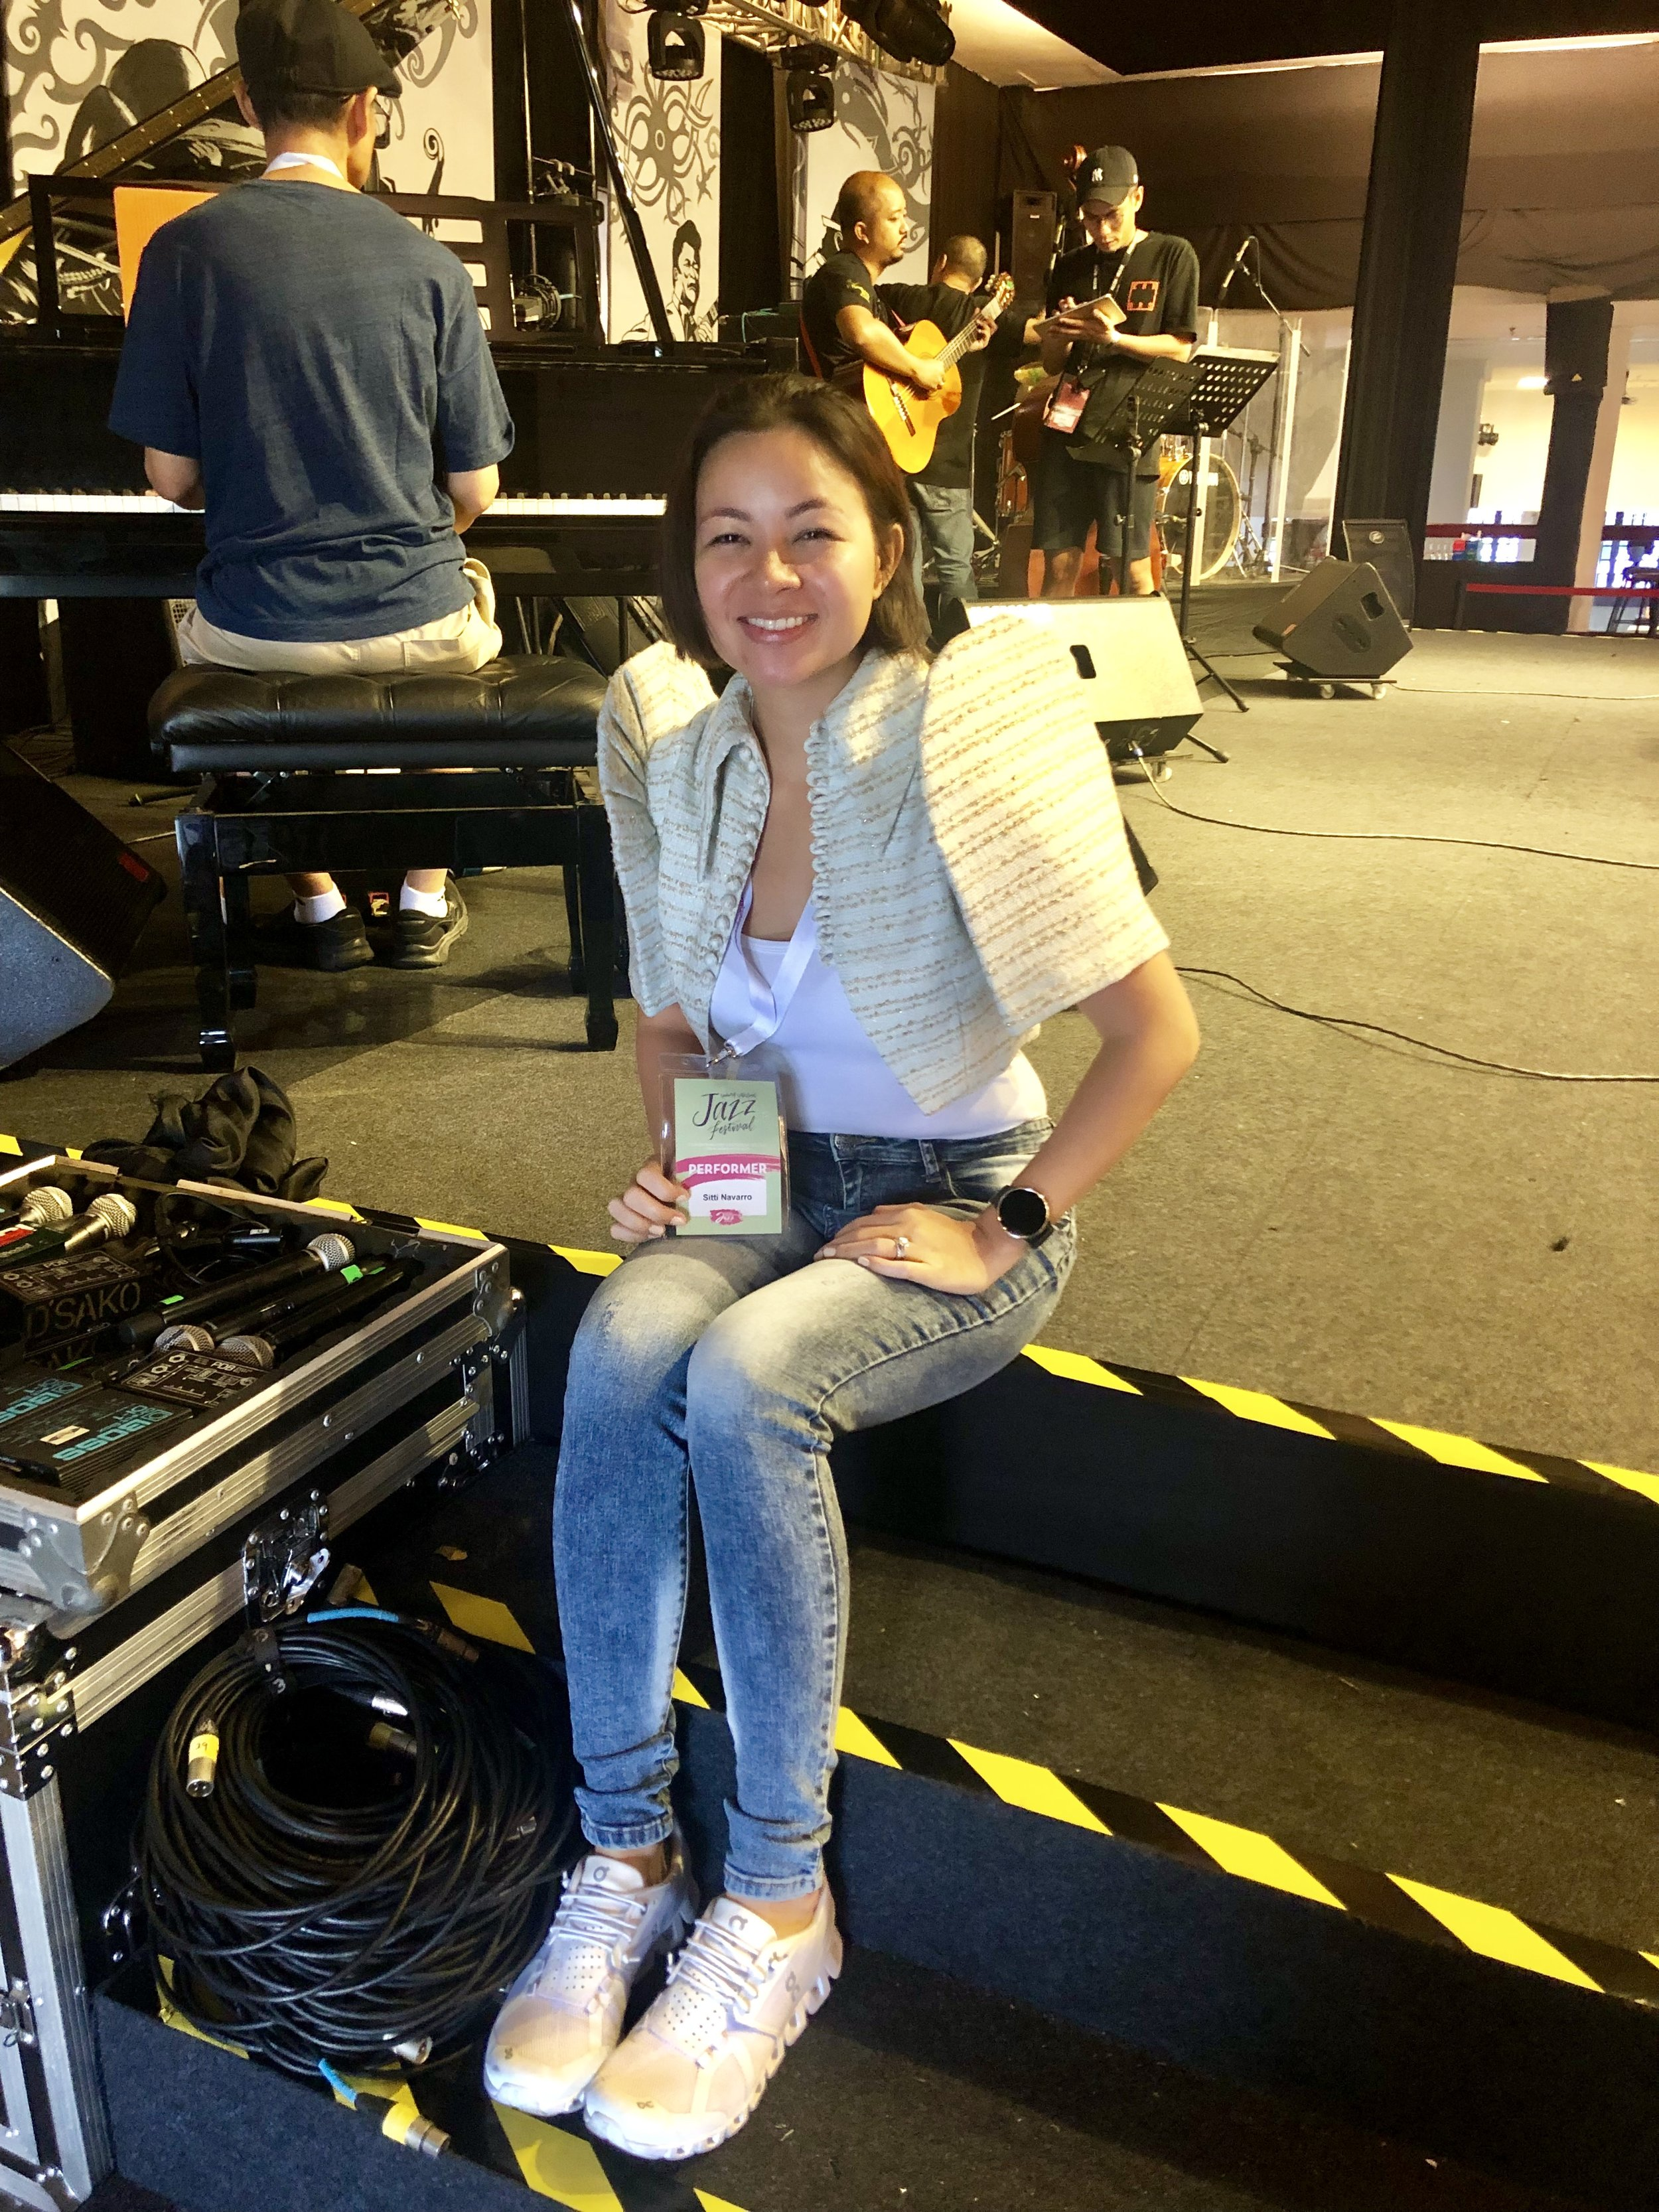 At soundcheck earlier. Praying that my voice will come out tonight. Been sick the past few days.  Si  Lord  na bahala .